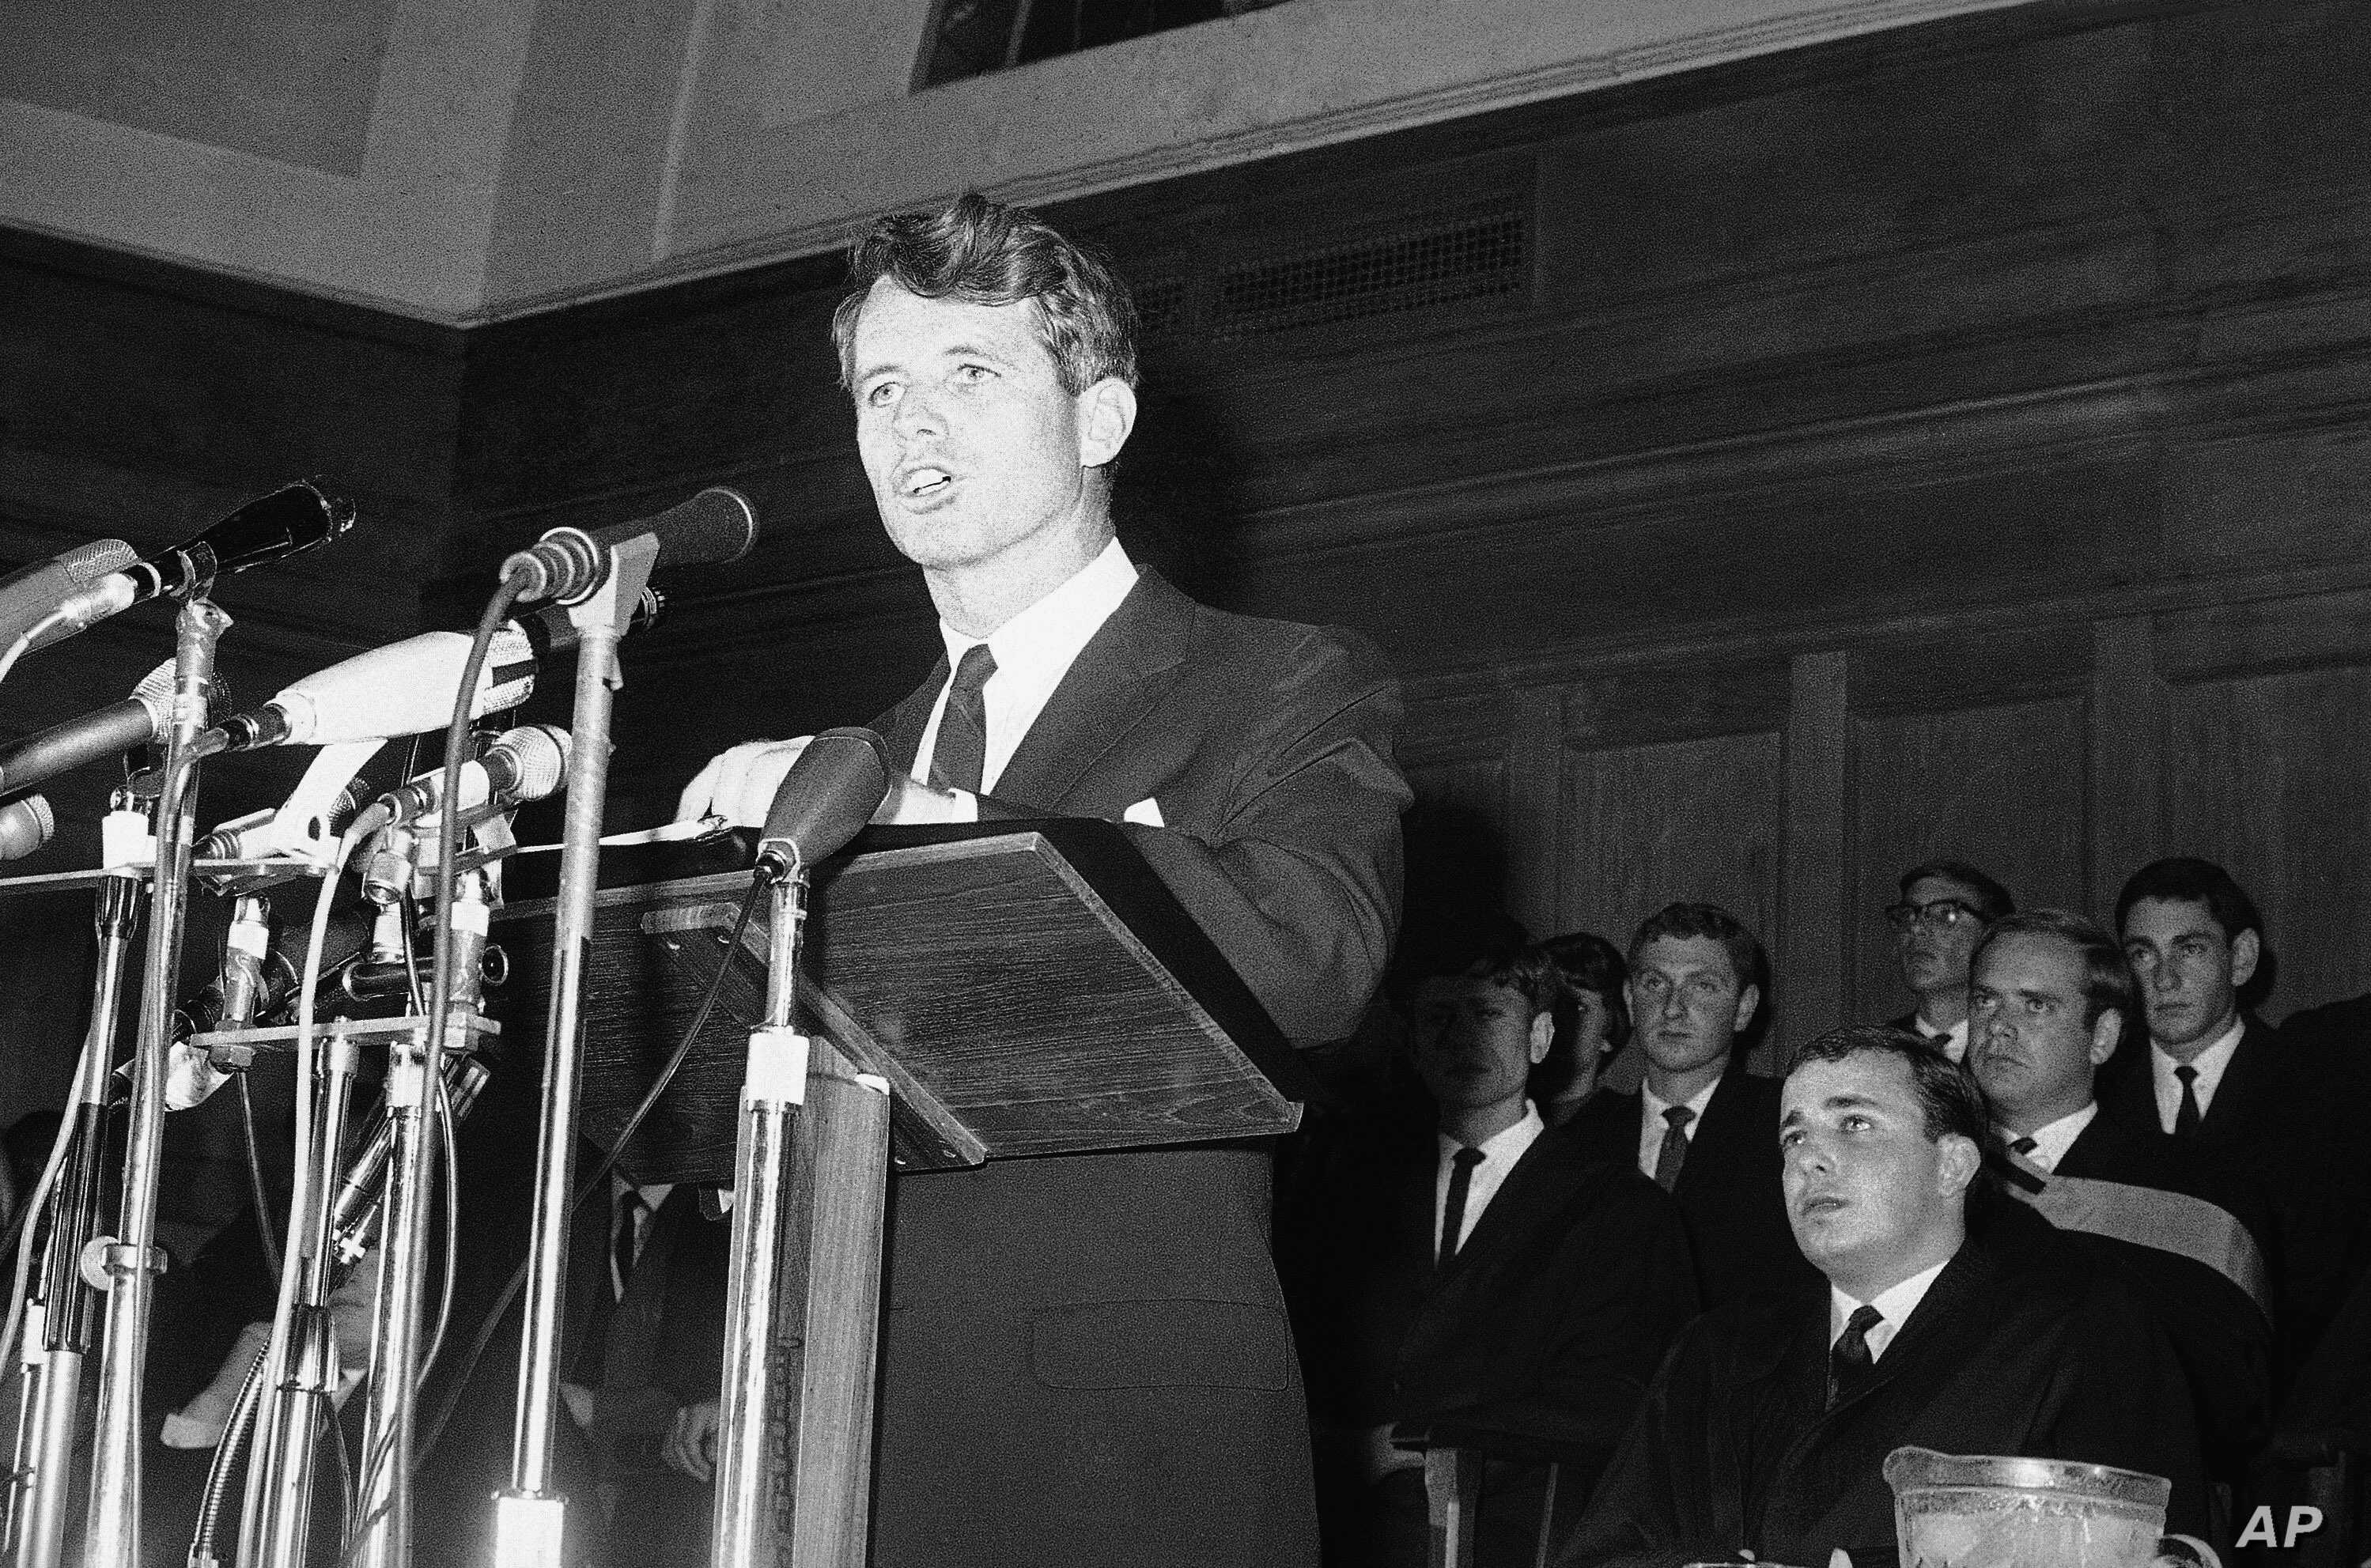 FILE - In this June 6, 1966, file photo, U.S. Senator Robert F. Kennedy, addresses students at Cape Town University, South Africa. In 1966 Kennedy traveled to apartheid South Africa to speak about equality and the rule of law. This week members of hi...